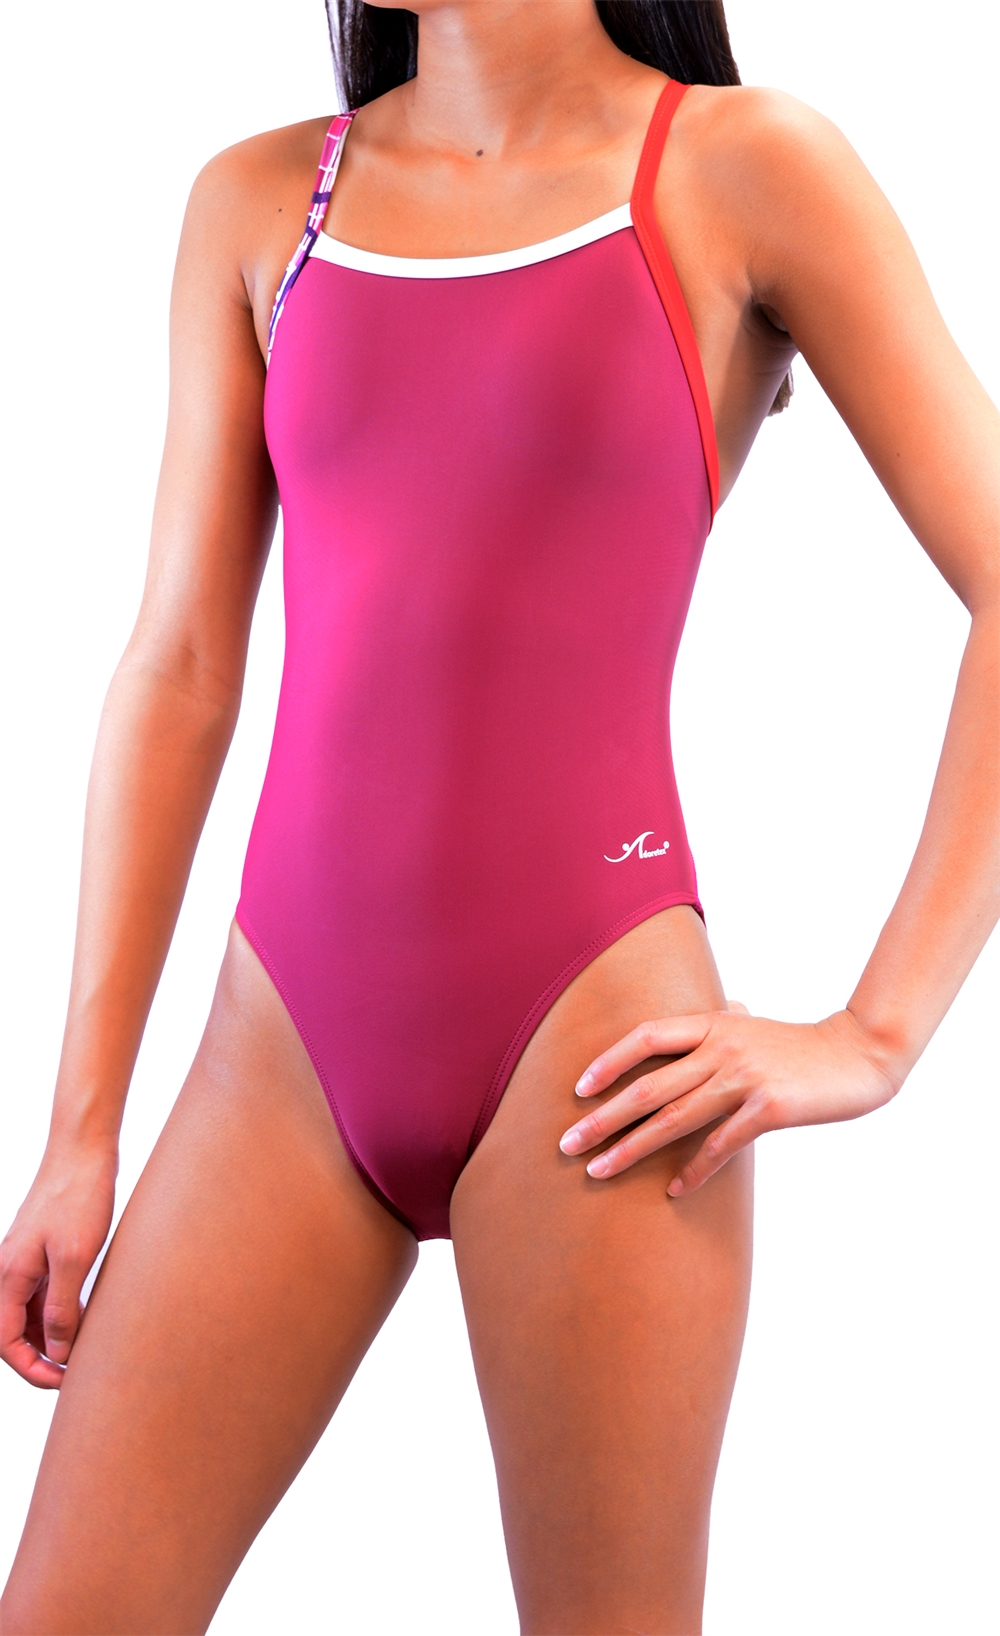 Adoretex Female Thin Strap Swimwear